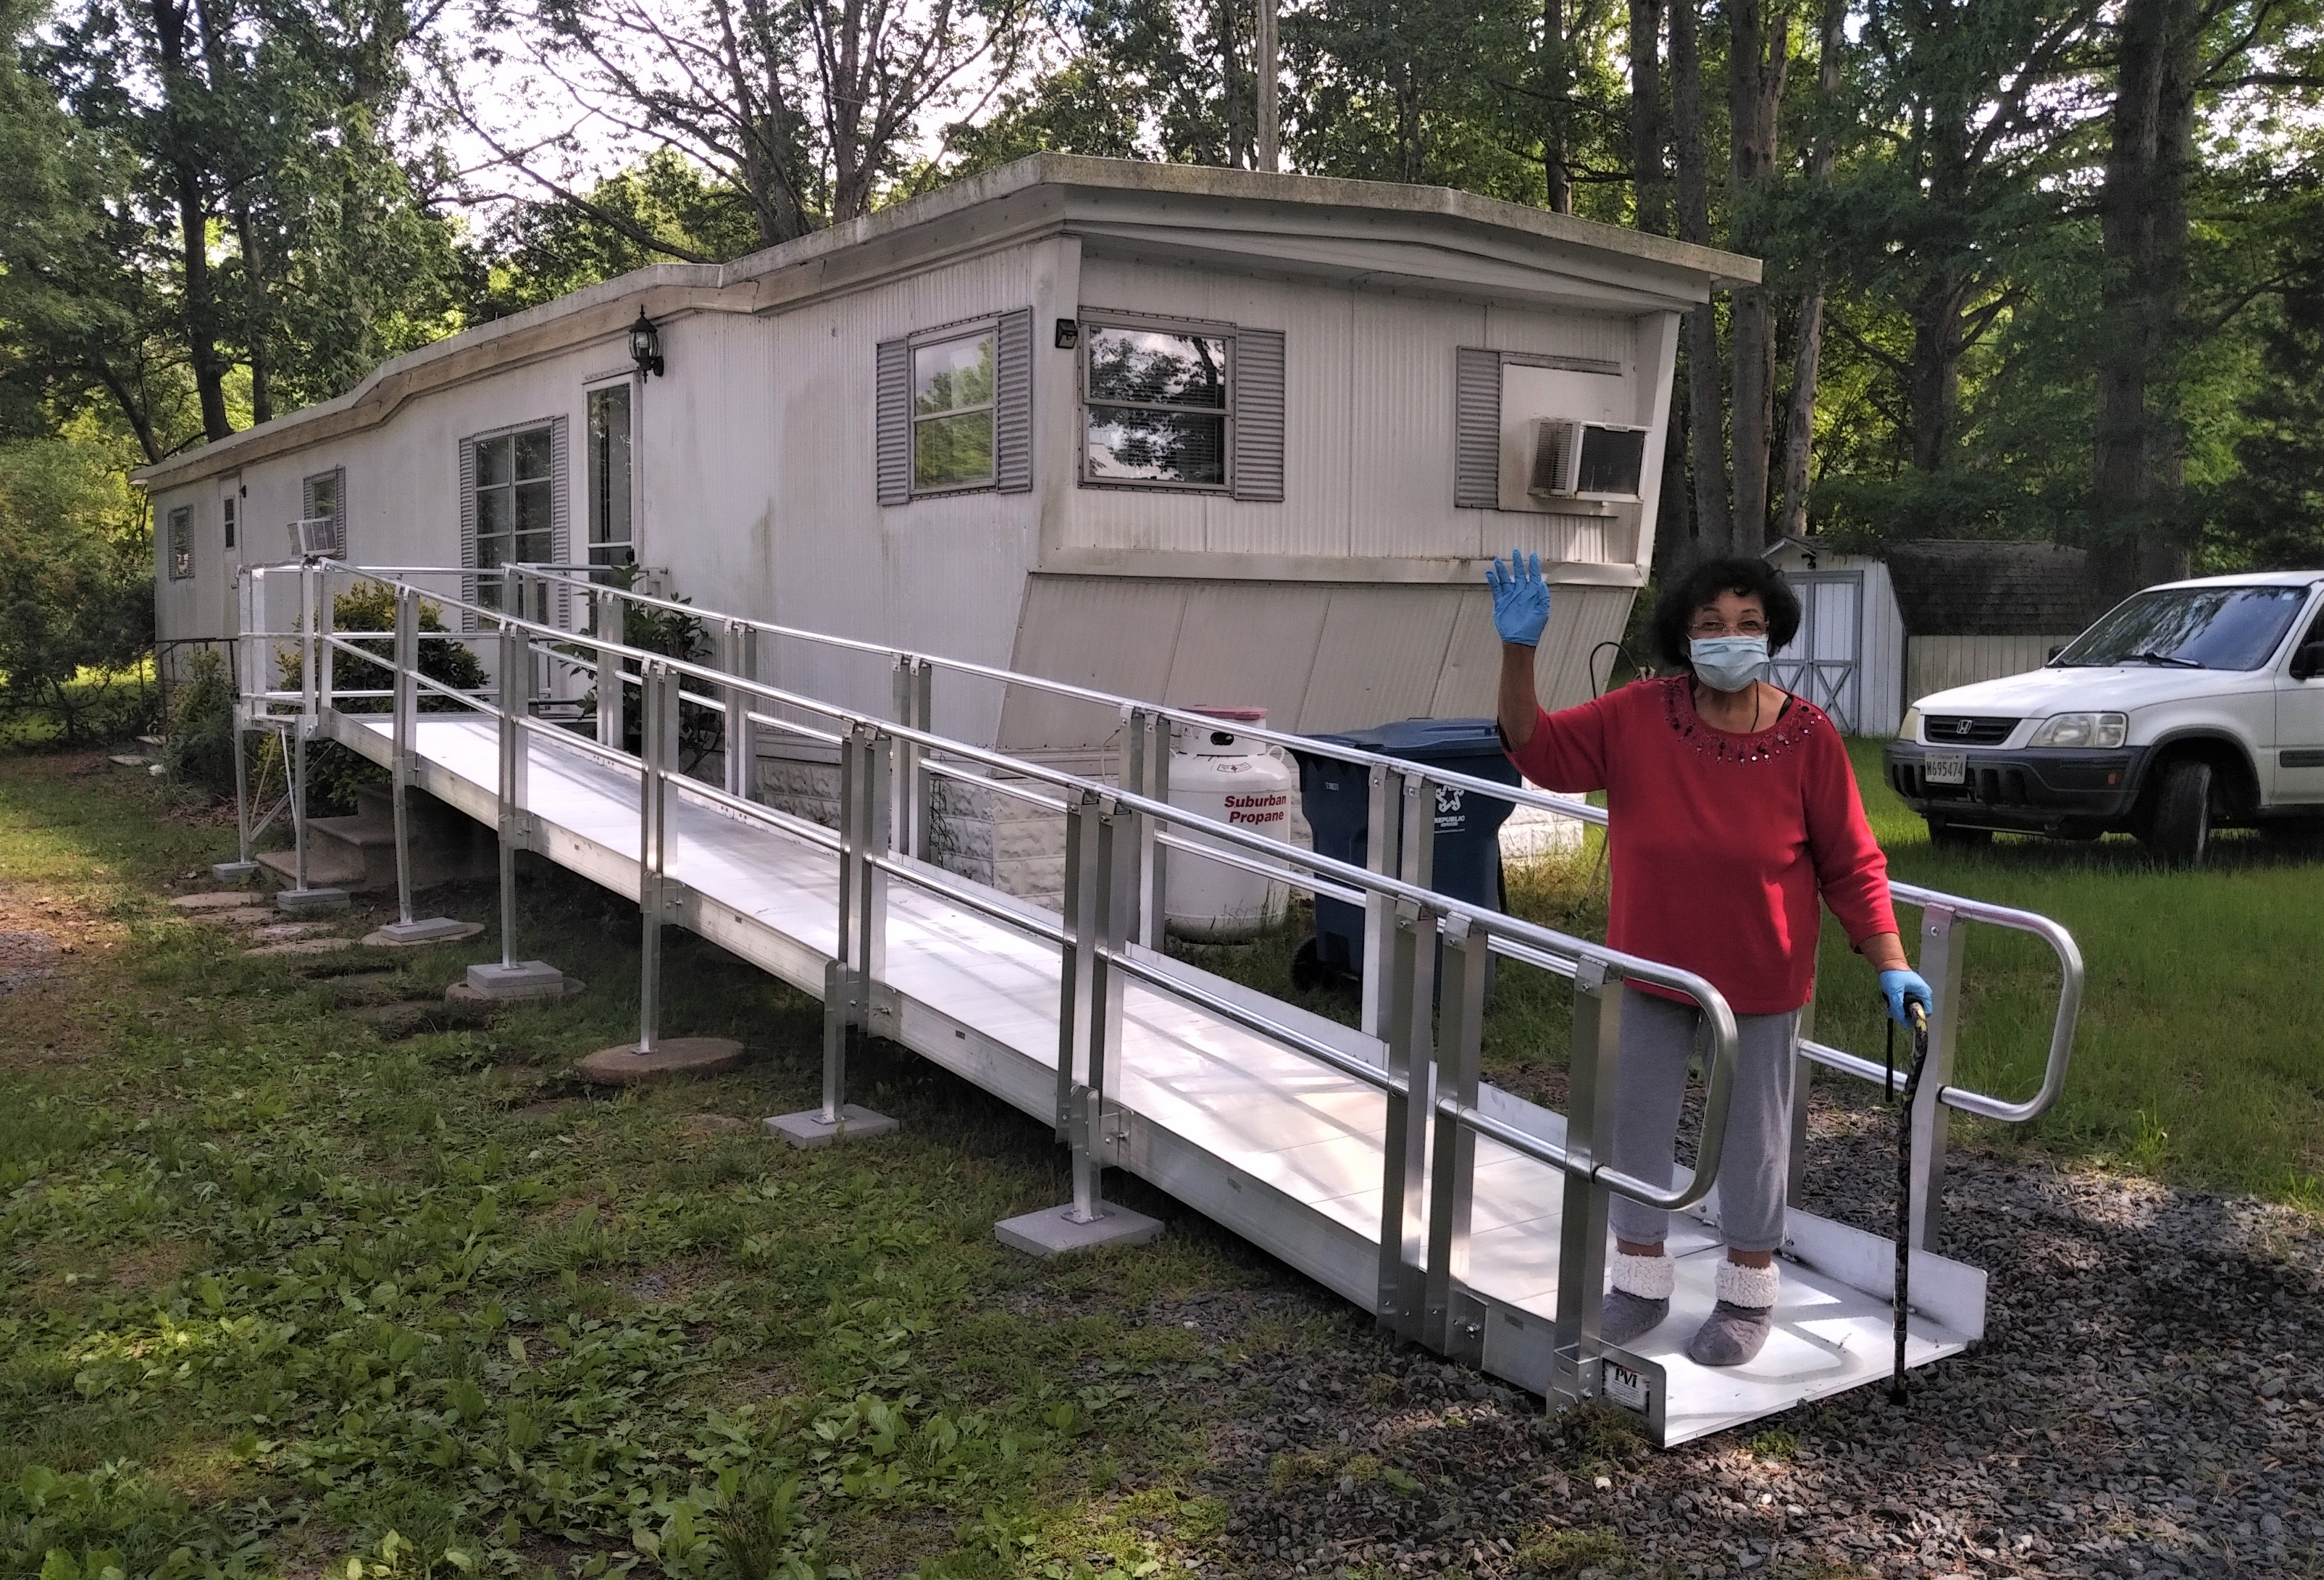 A mobile home with an new ramp installed and the homeowner on it waving